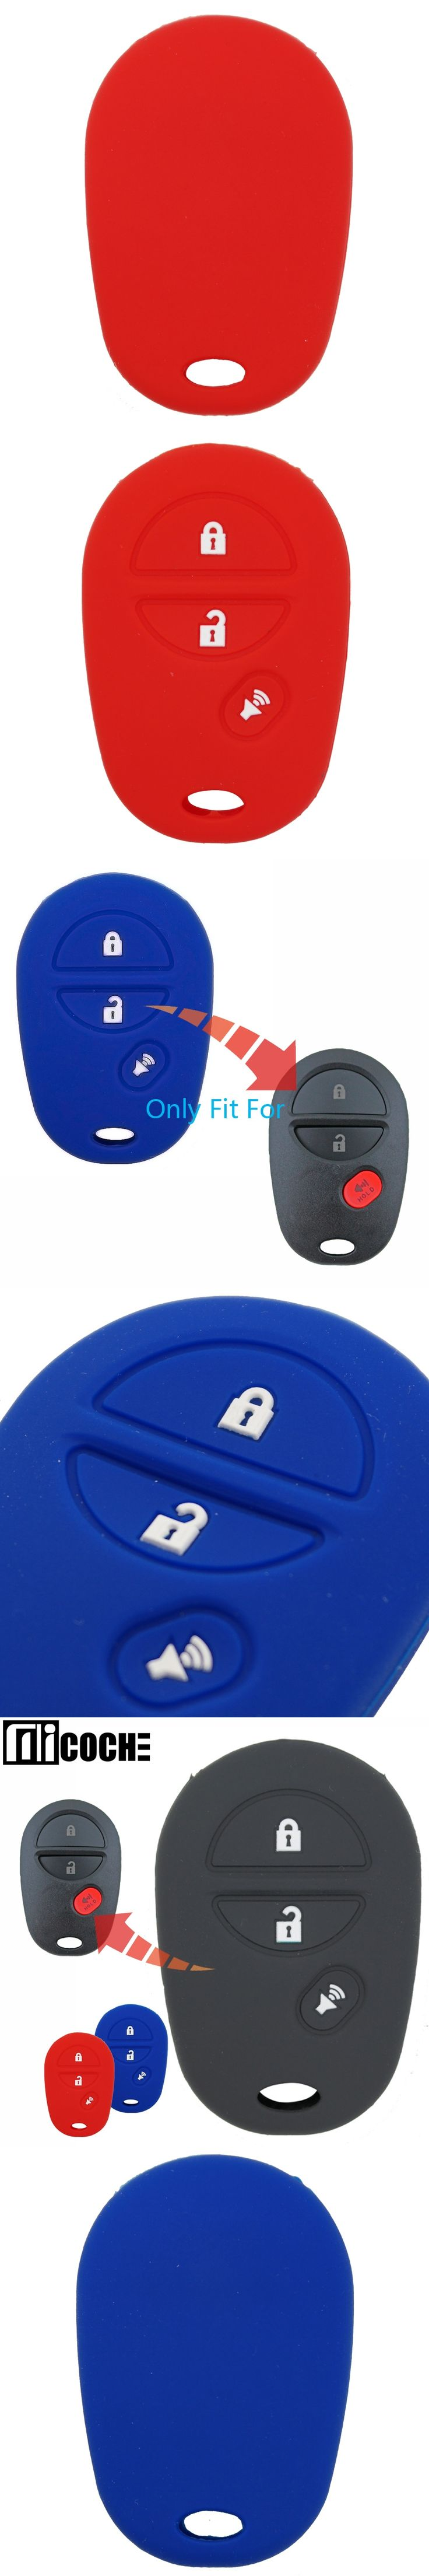 1pcs 3 buttons Car Key Case Cover For Toyota Highlander Tacoma Sienna Tundra Sequoia Auto Key Protector Skin Black Blue Red